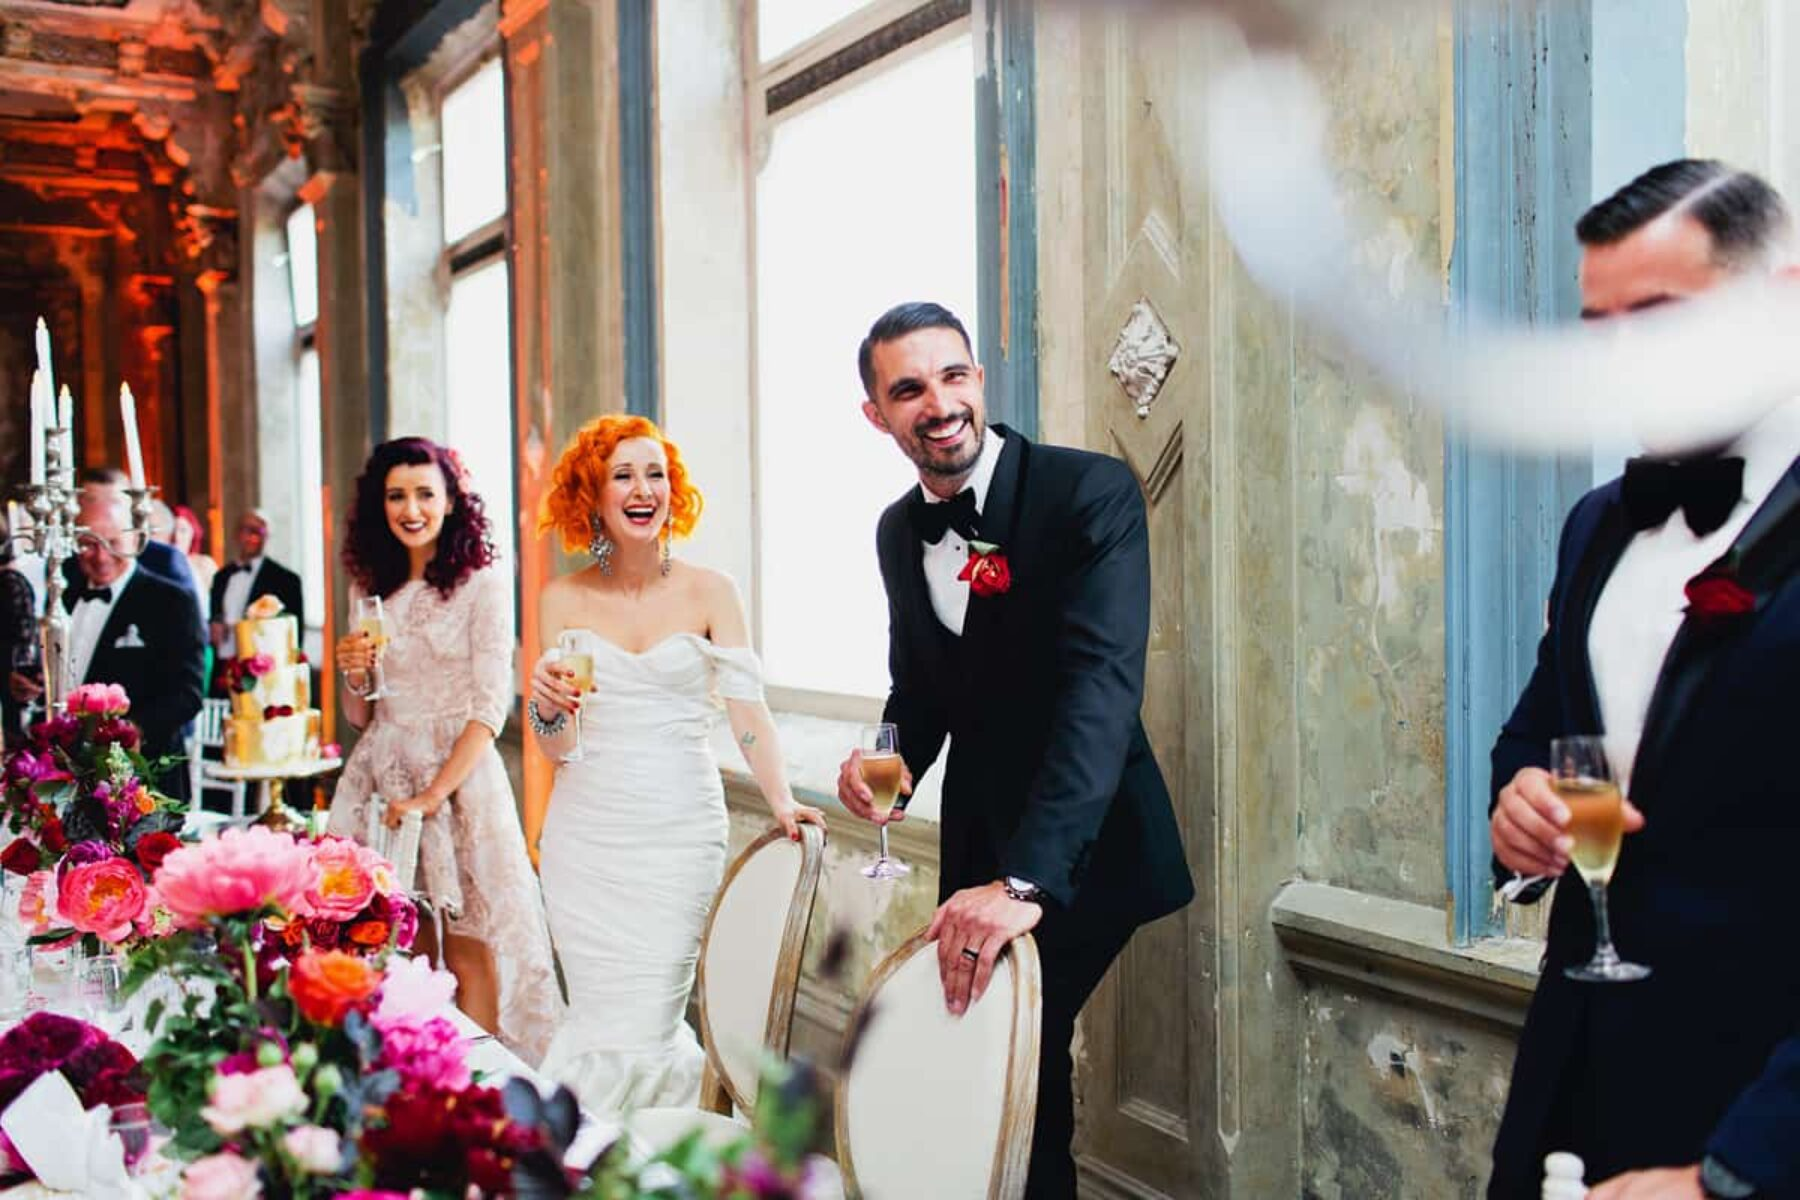 Melbourne wedding at The George Ballroom - photography by Sayher Heffernan